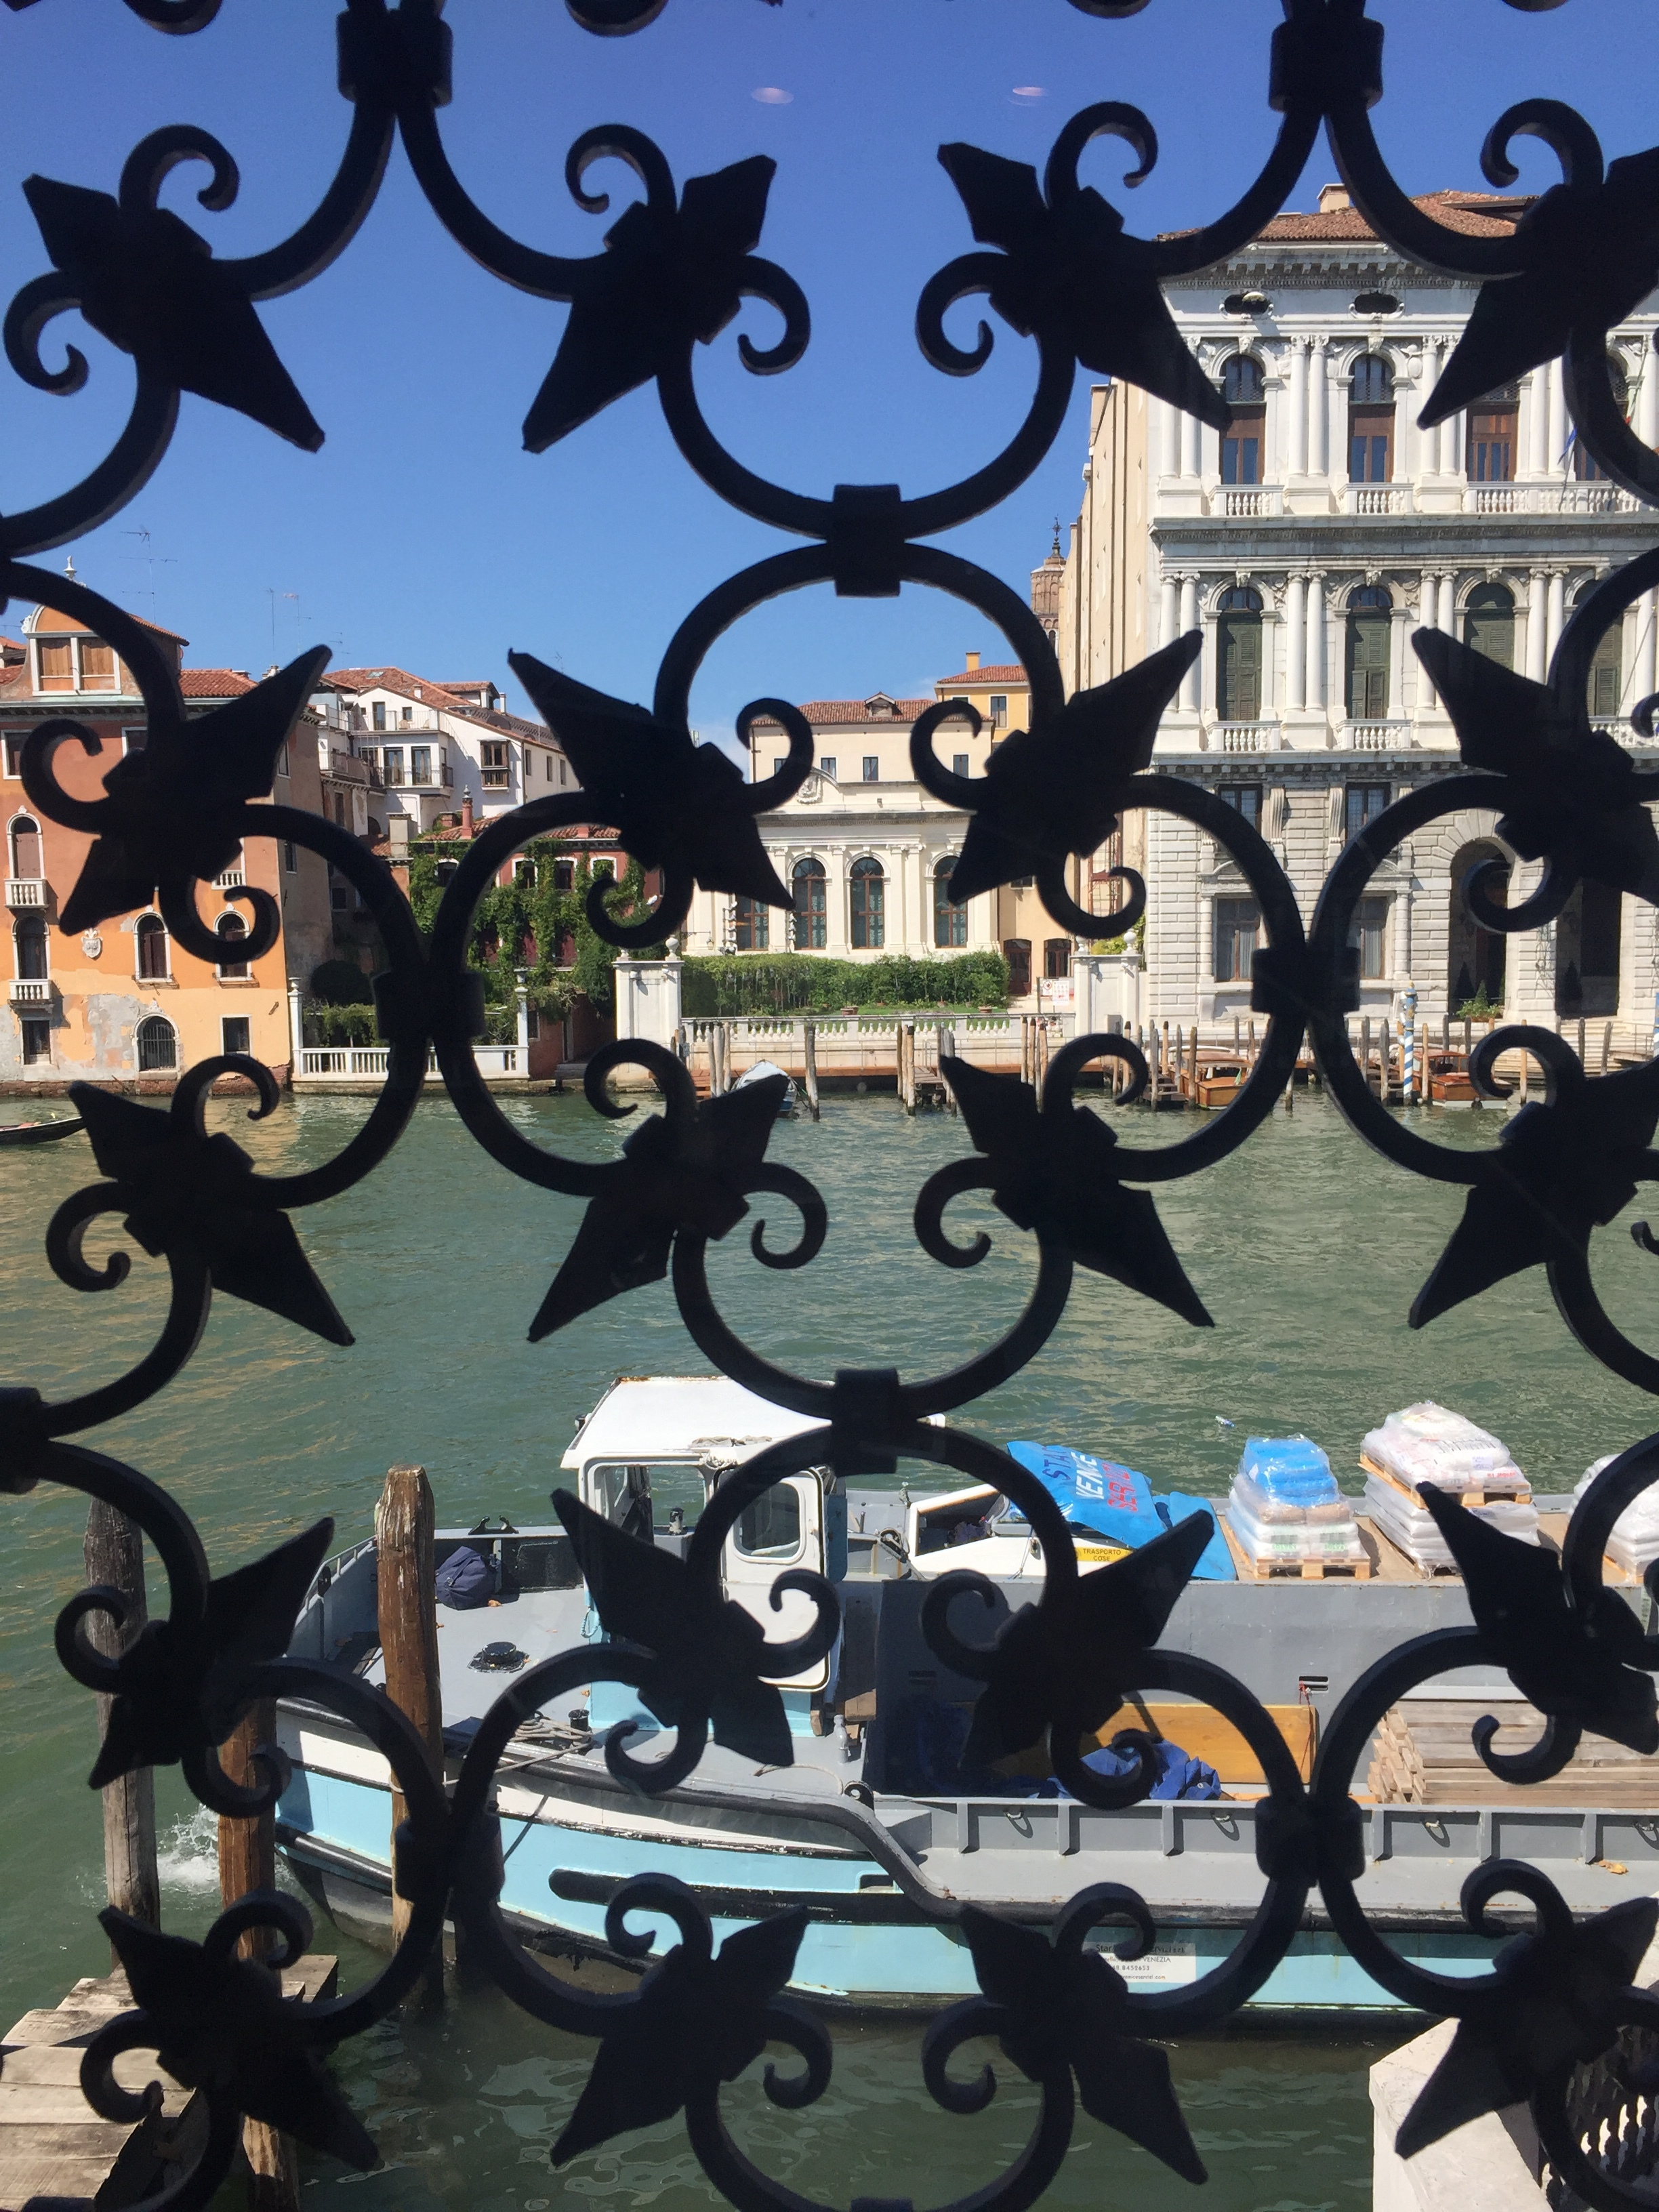 Looking out onto the Grand Canal from the  Guggenheim Foundation